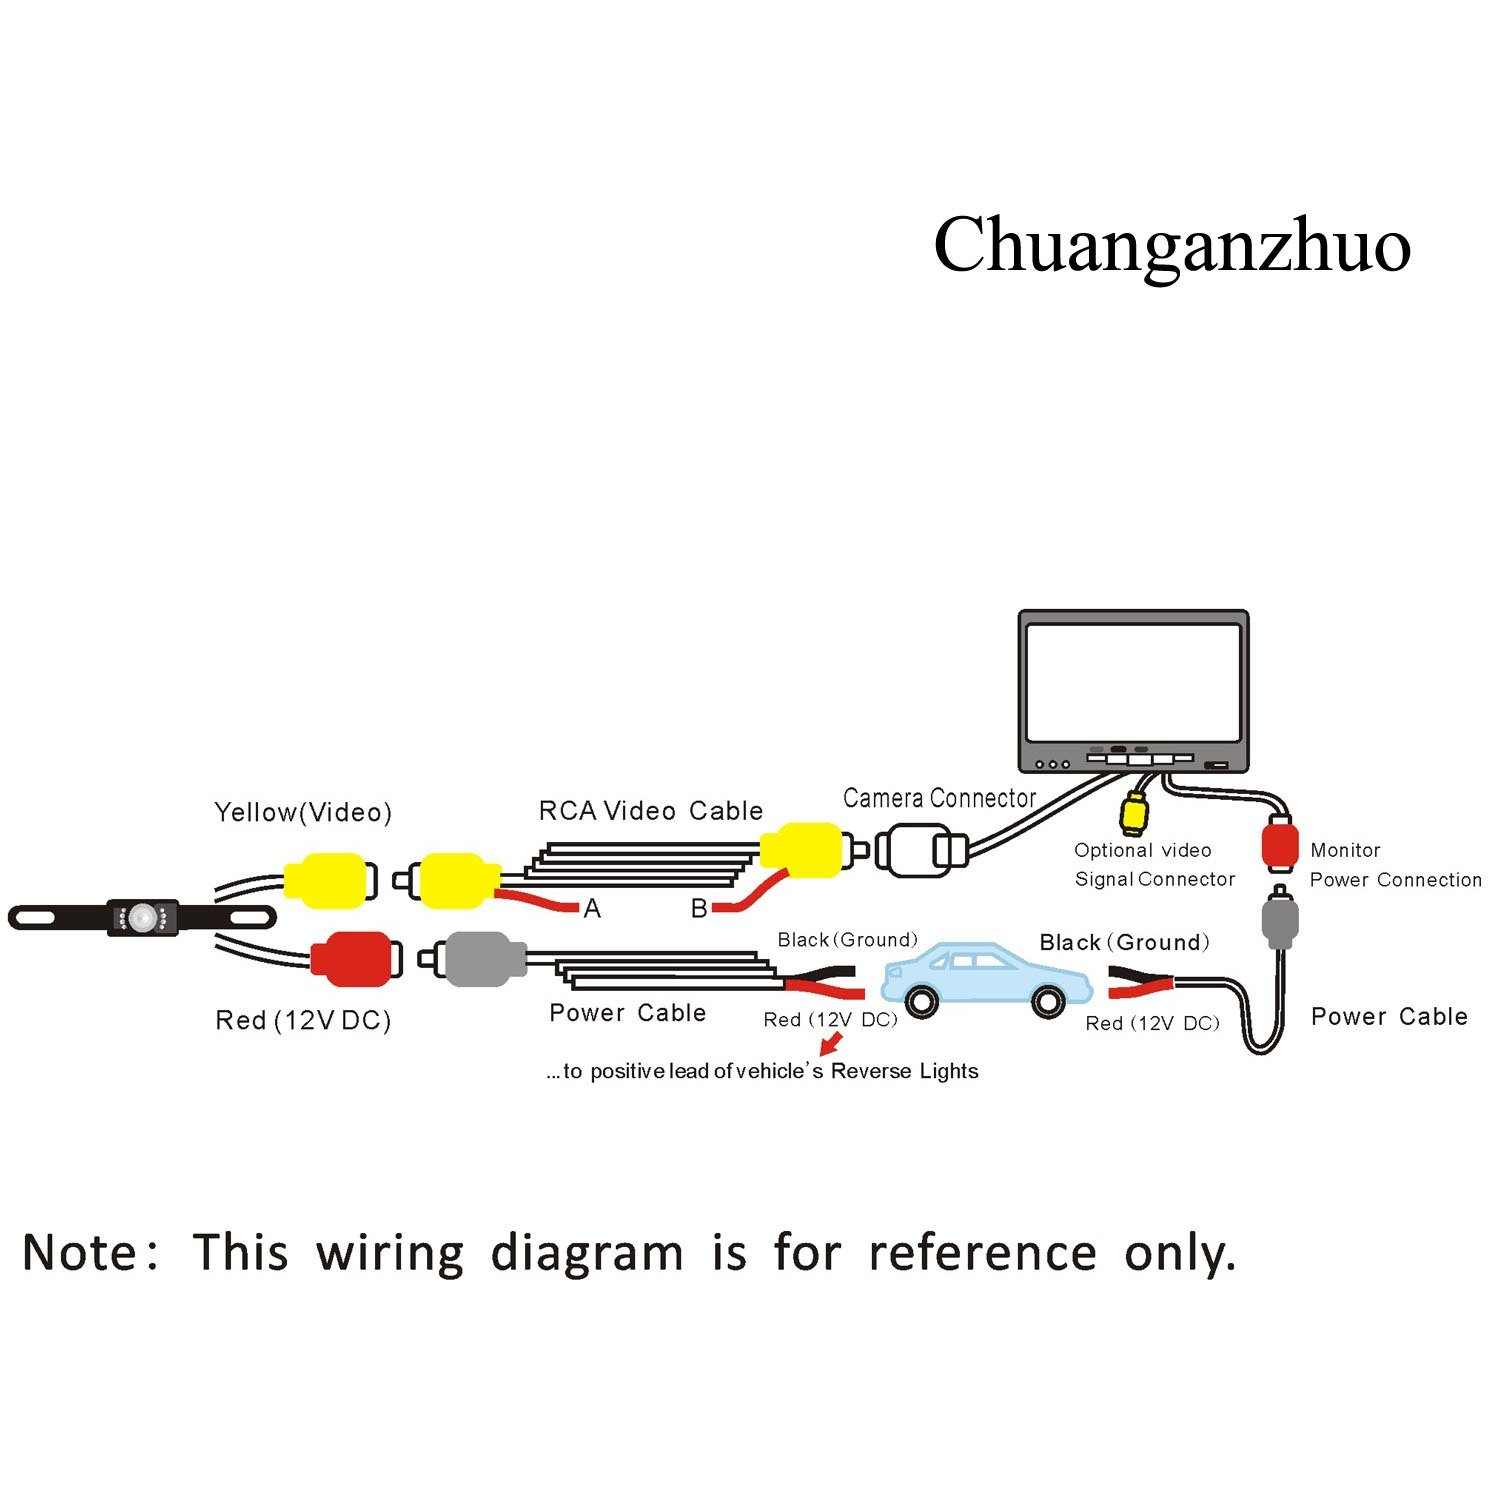 Ntsc Camera Wiring Diagram Books Of 2007 Ford Mustang Backup Lights Amazon Com And Monitor Kit Chuanganzhuo License Rh